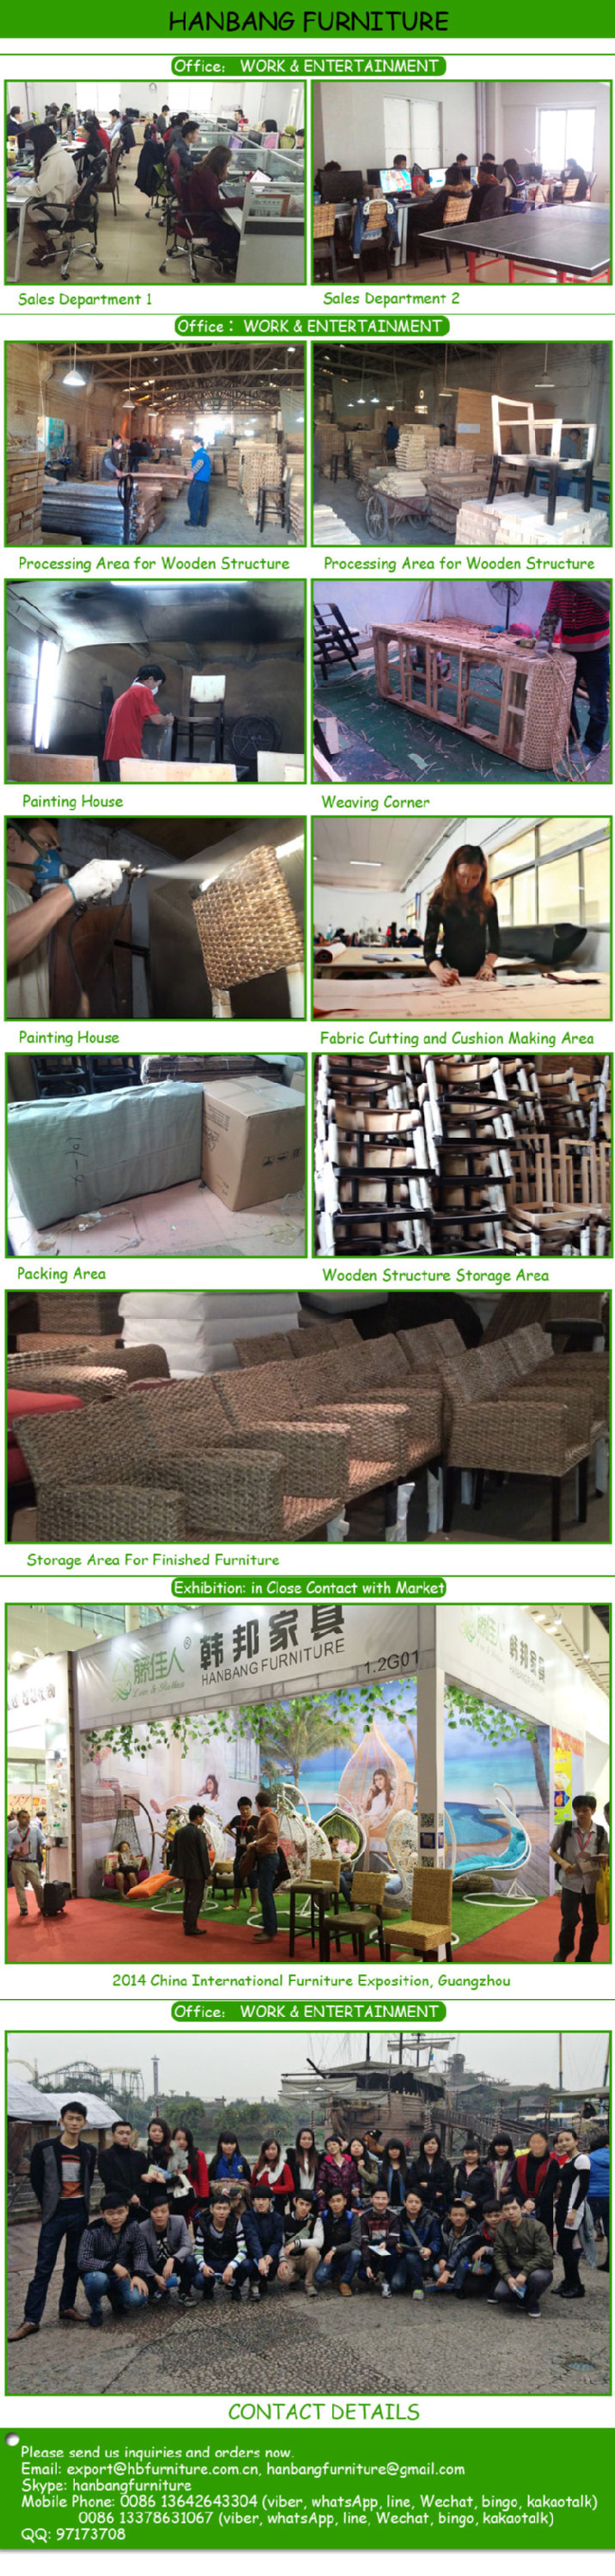 Natural Rattan and Seagrass Factory.jpg